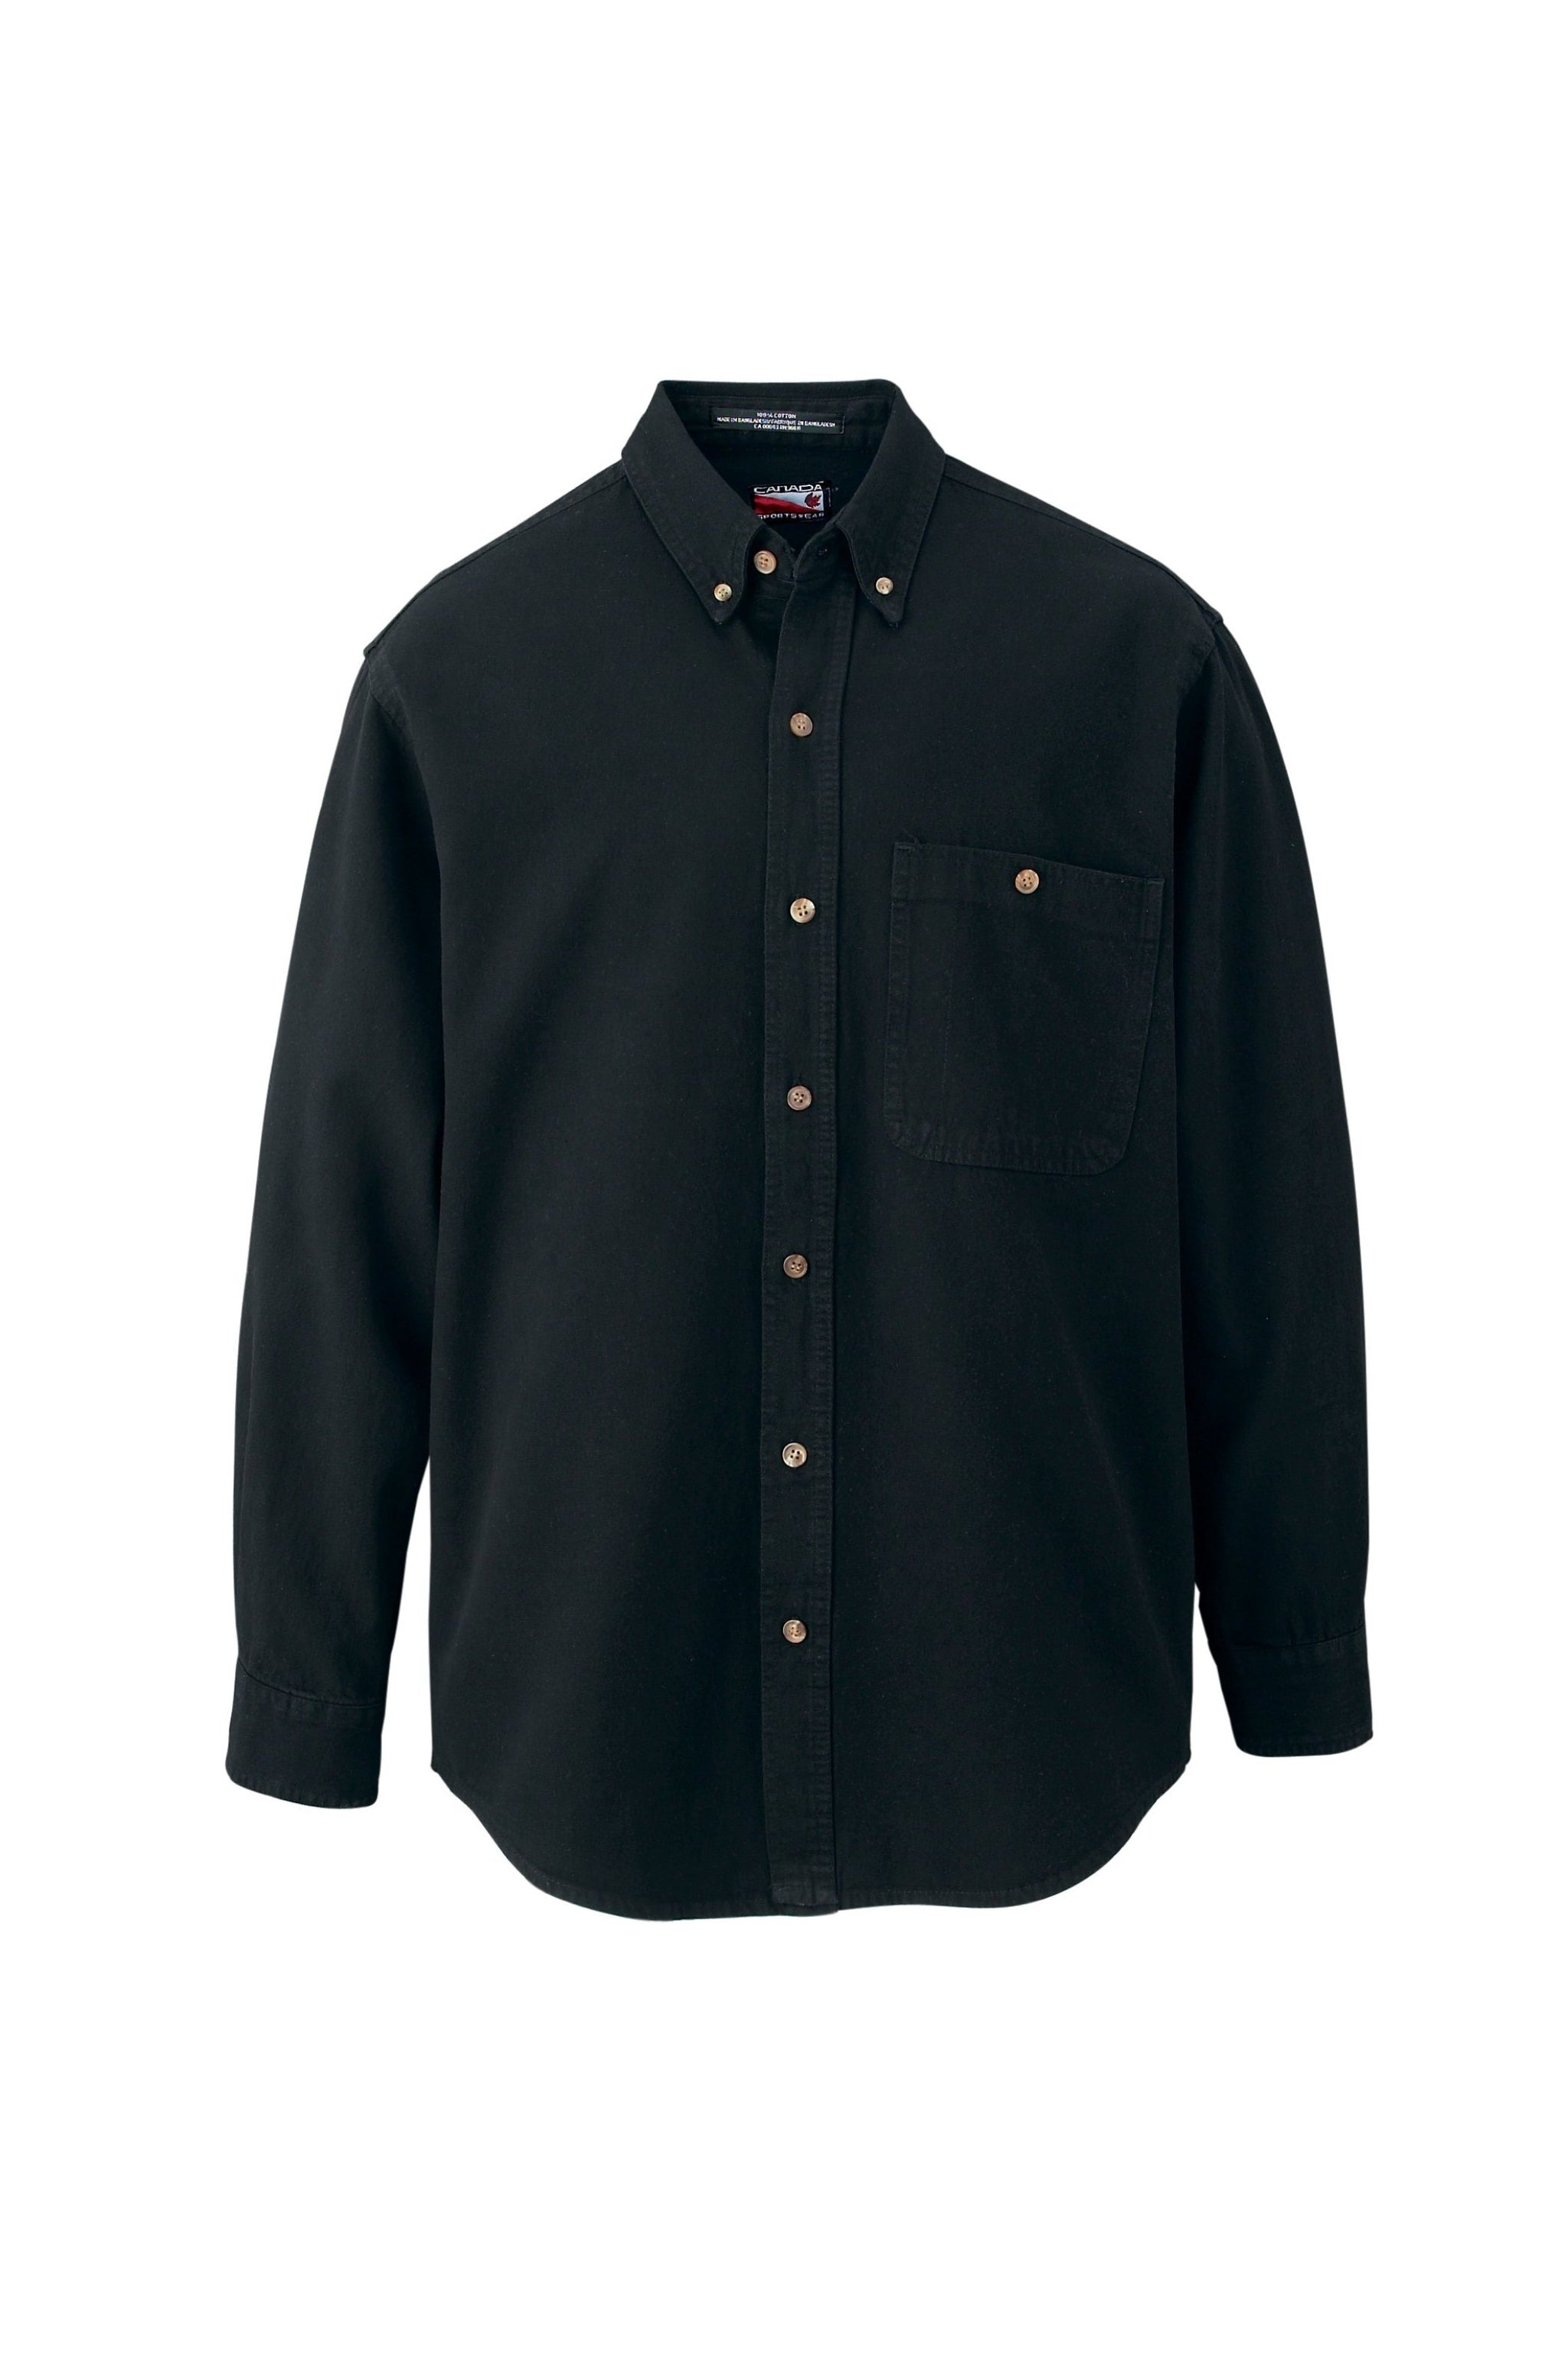 CANADA SPORTSWEAR MEN'S LOGGER COTTON DENIM SHIRT